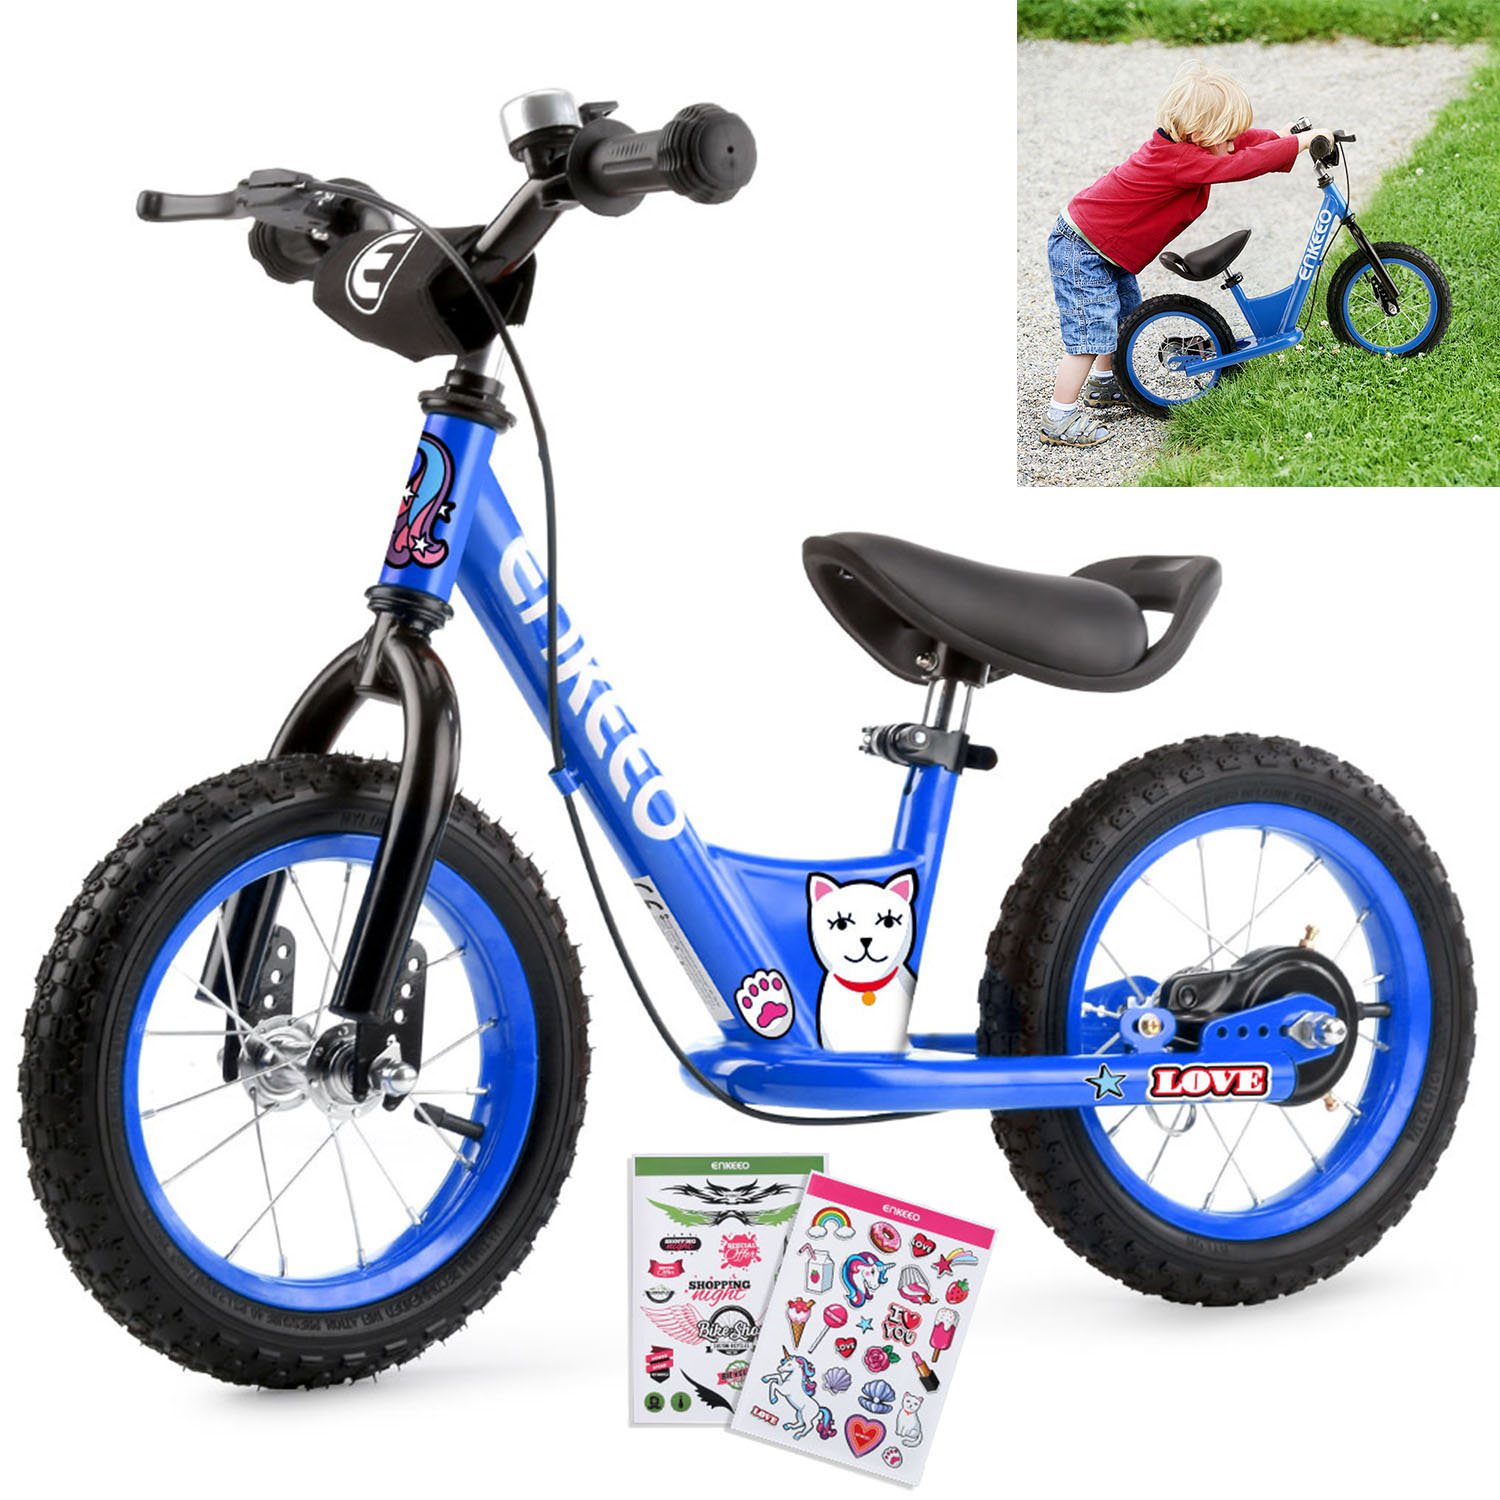 """ENKEEO 14"""" Sport Balance Bike No Pedal Walking Bicycle with Carbon Steel Frame, Adjustable Handlebar and Seat, 110lbs Capacity for Kids Toddlers Ages 2 to 6 Years Old"""